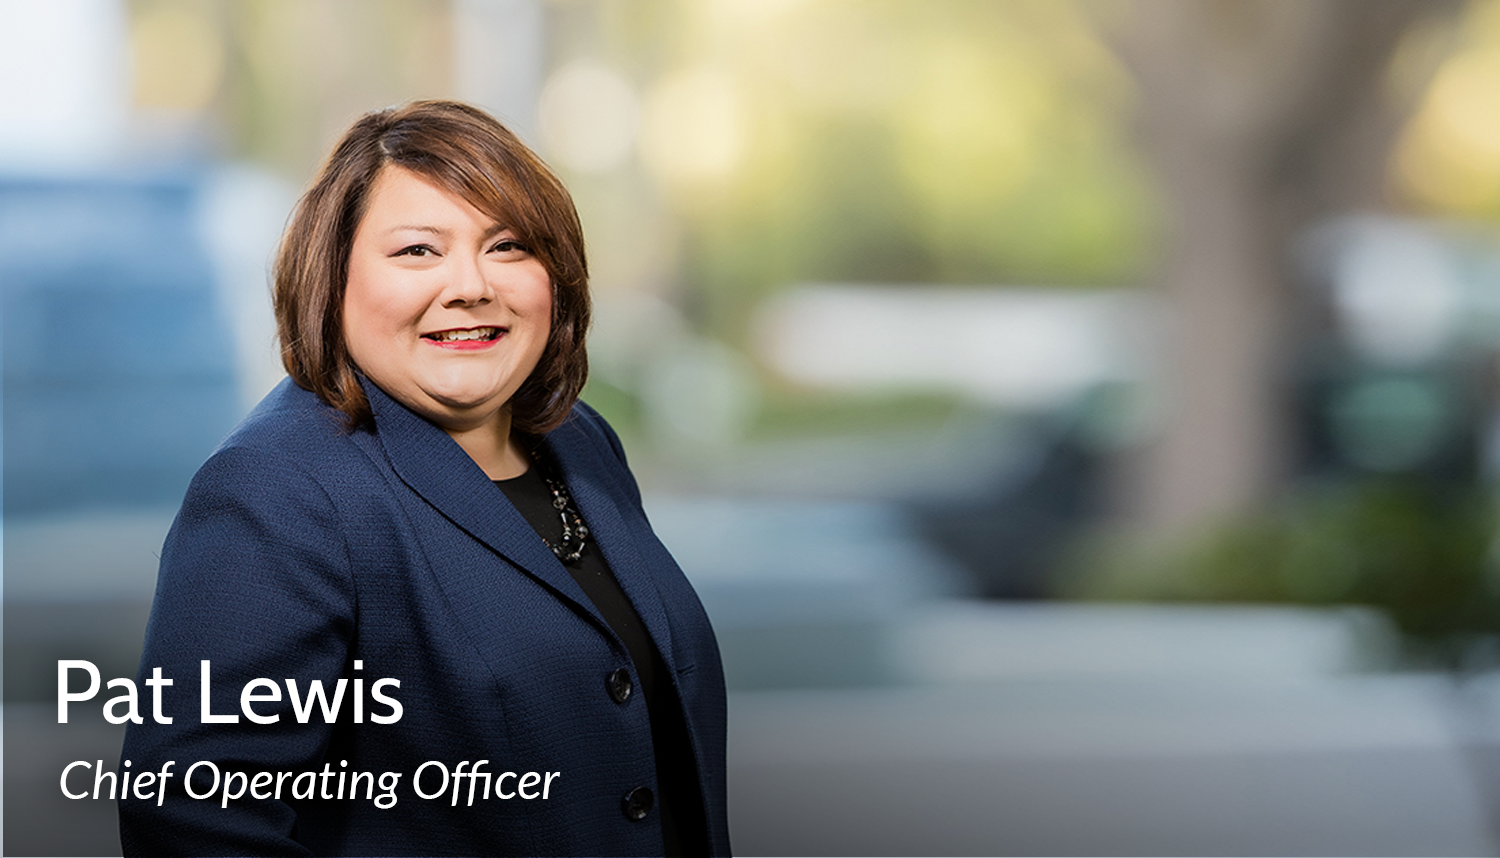 Pat Lewis, Chief Operating Officer